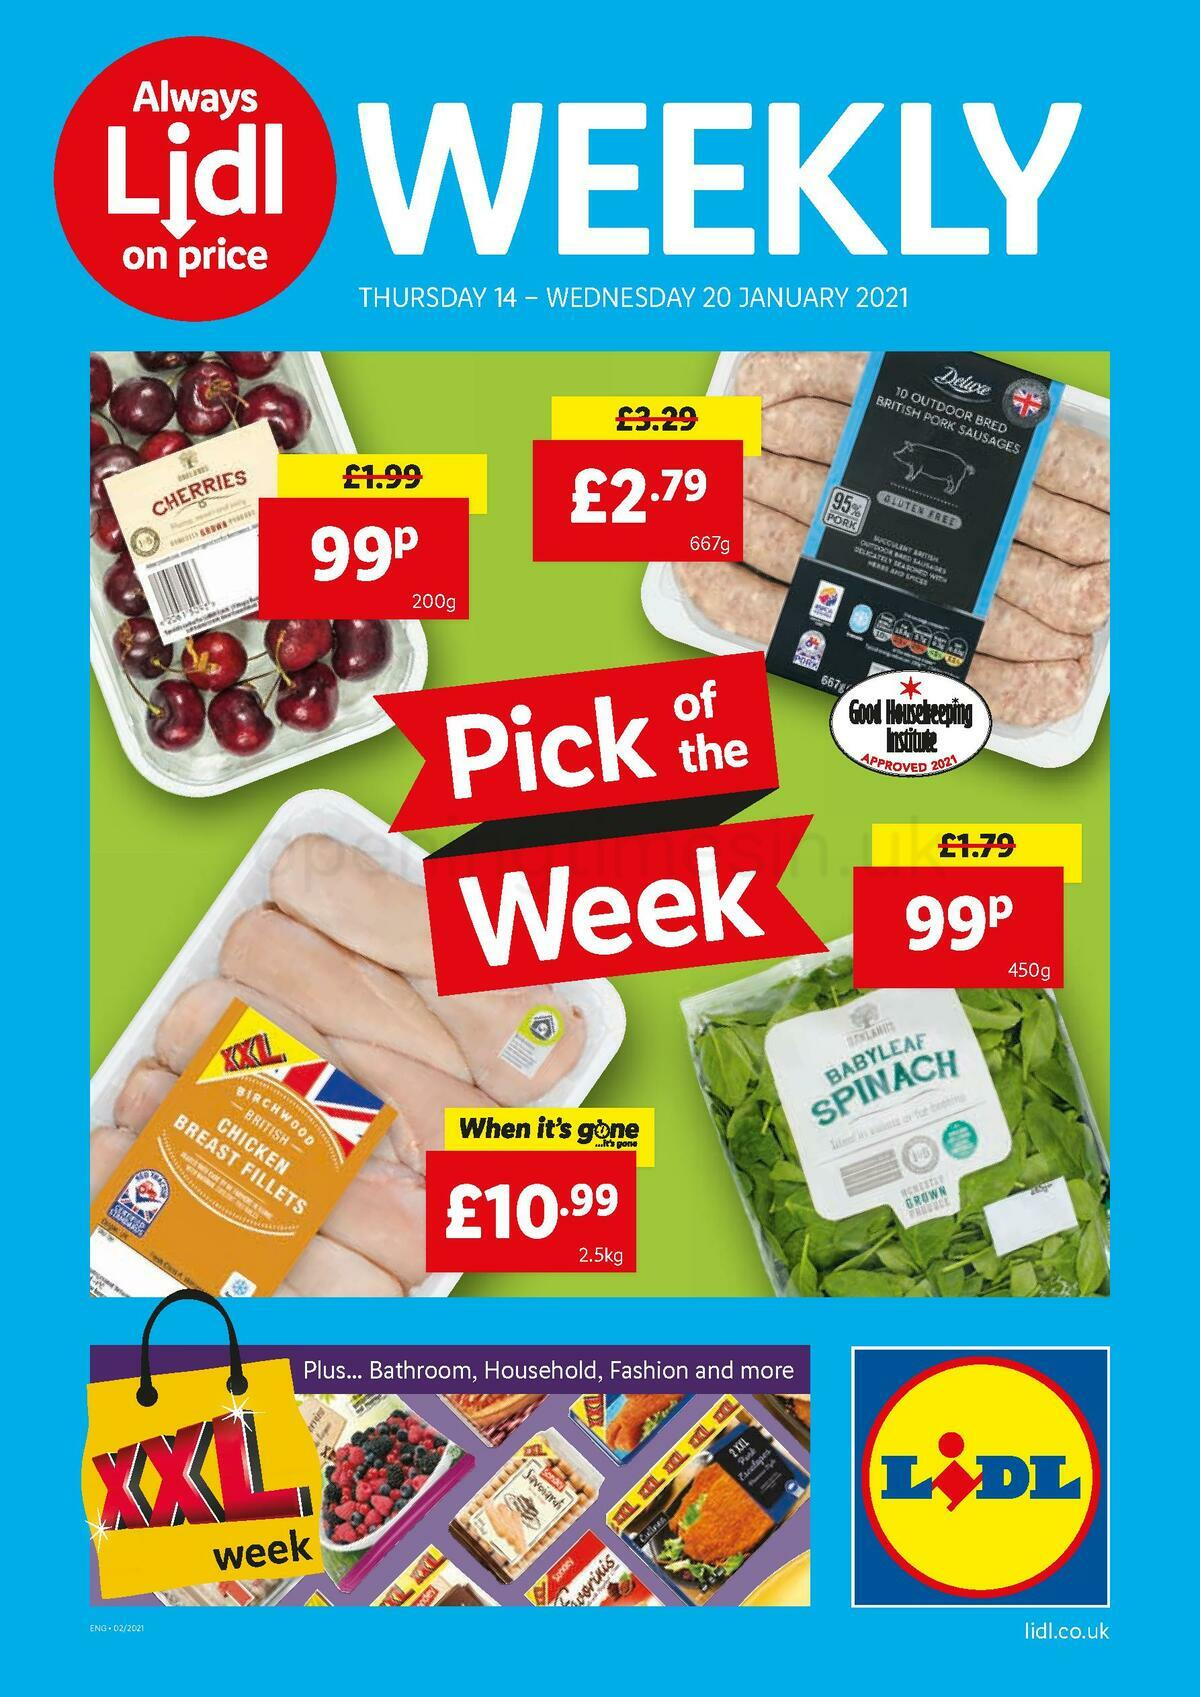 LIDL Offers from January 14